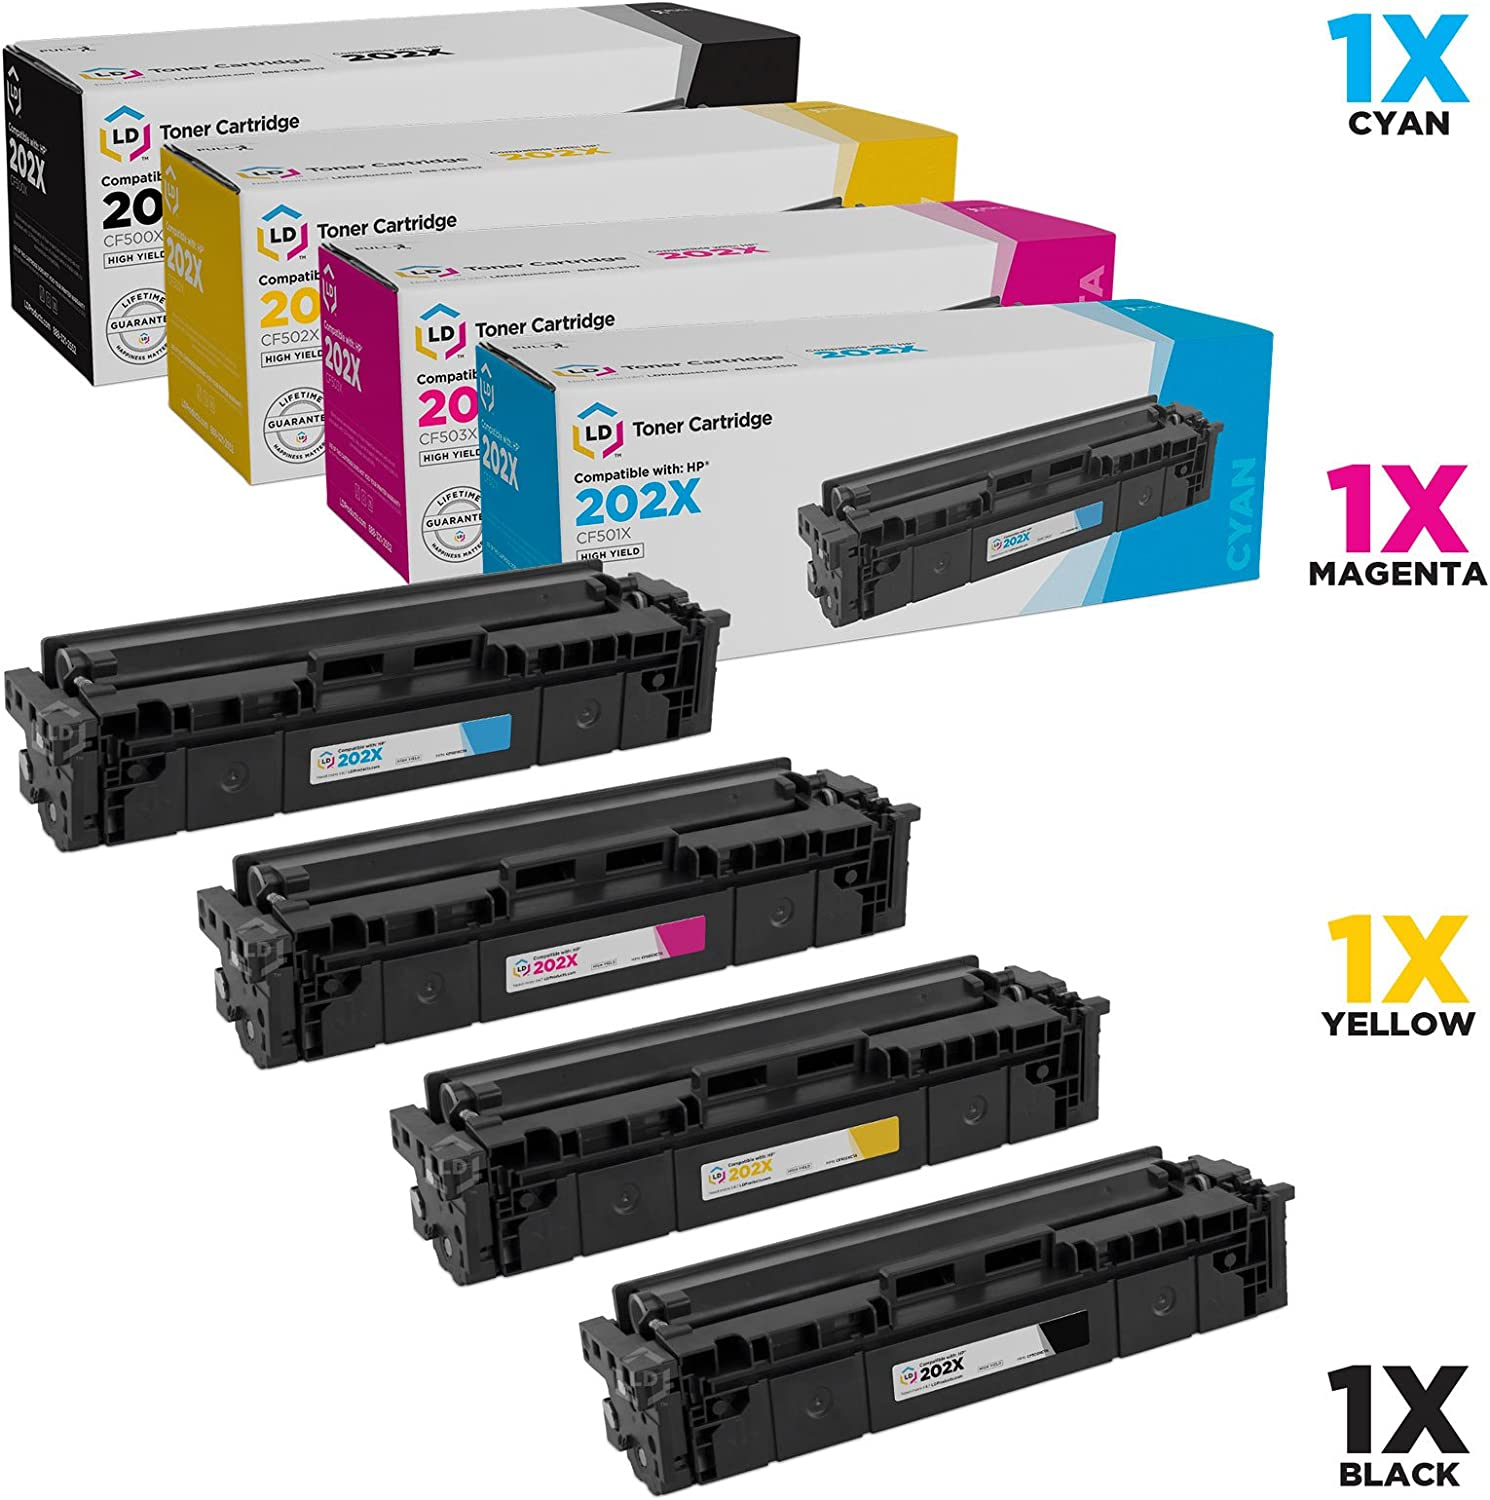 LD Compatible Toner Cartridge Replacements for HP 202X High Yield (1 Black, 1 Cyan, 1 Magenta, 1 Yellow, 4-Pack)